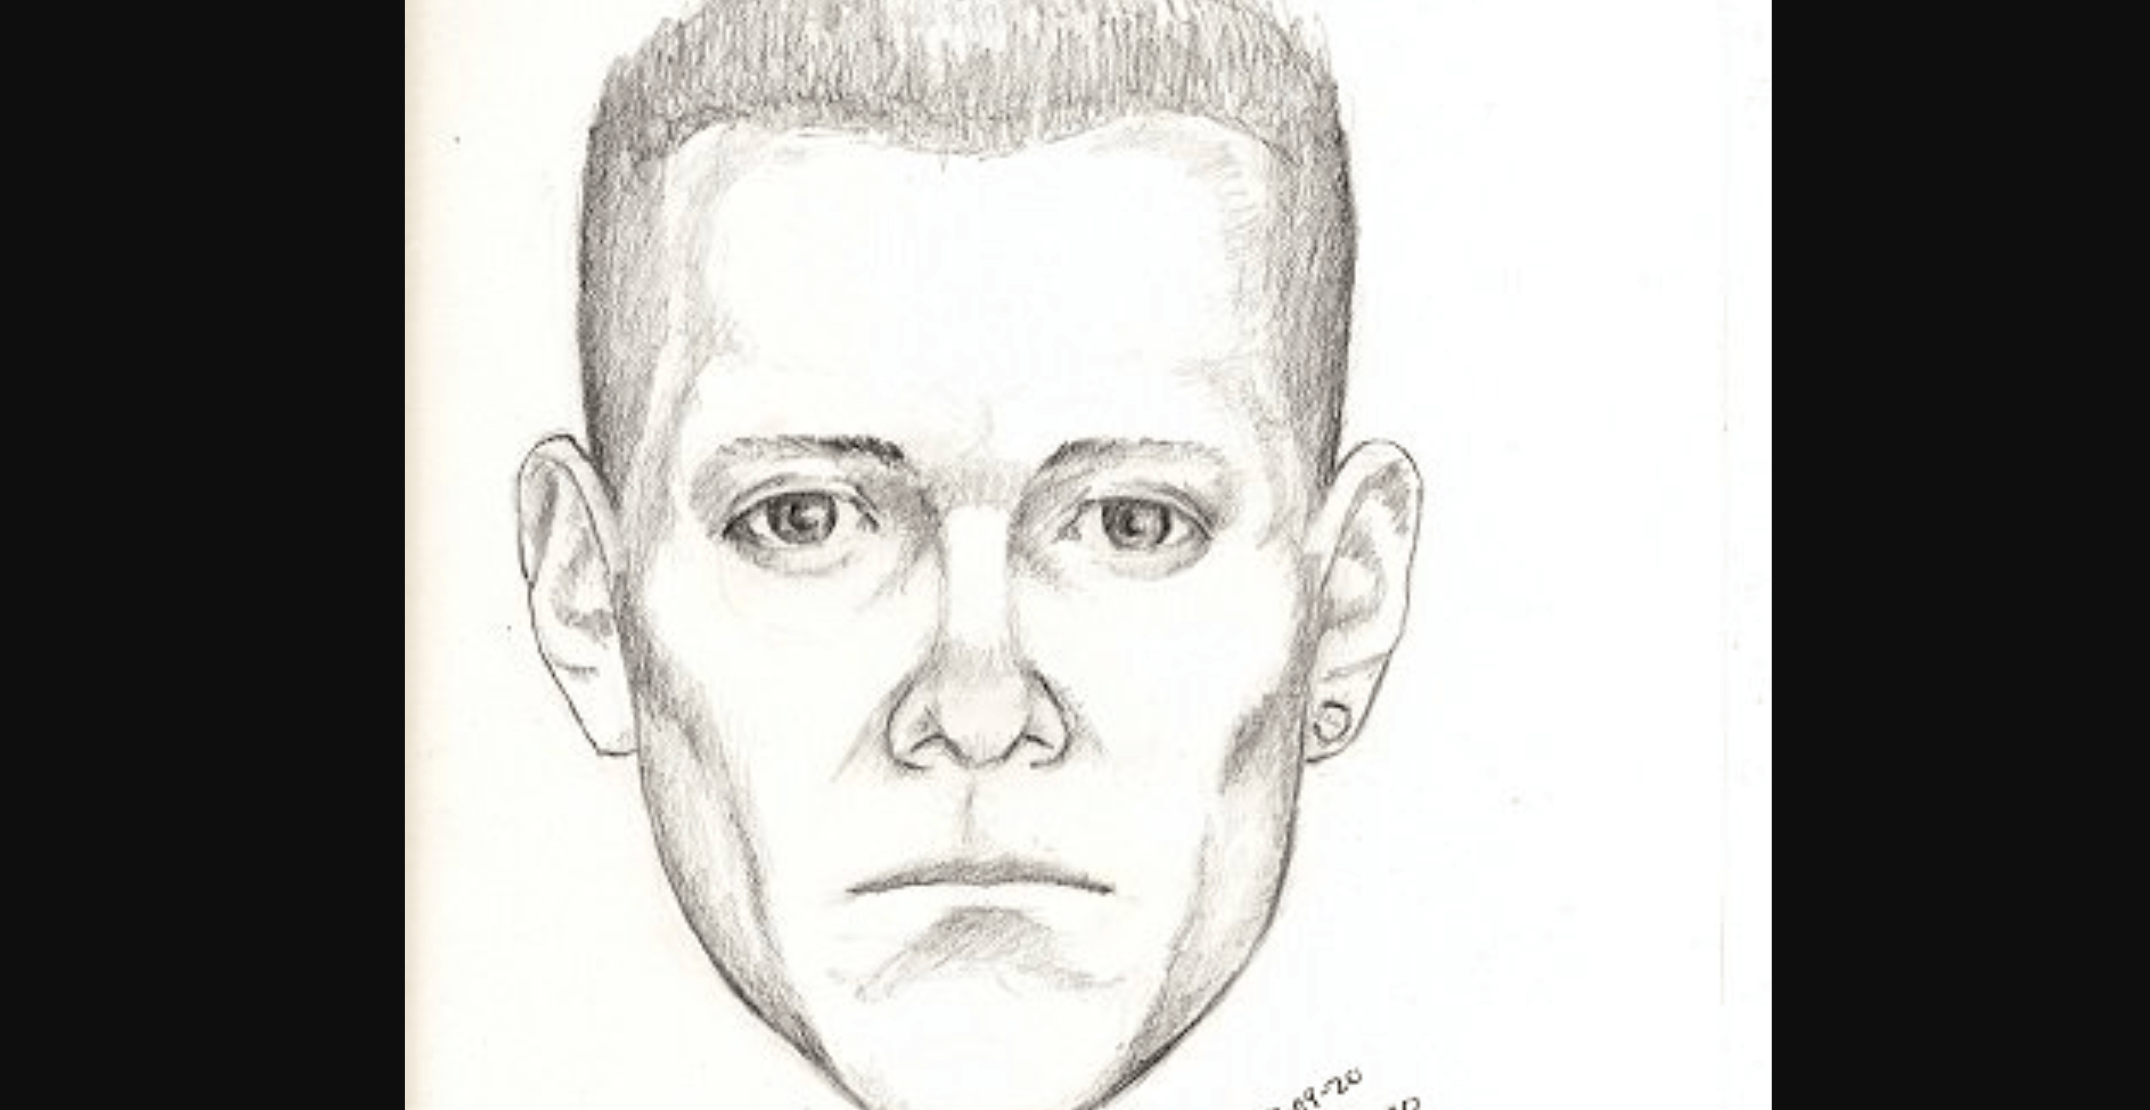 Sketch released of man allegedly masturbating in UBC woman's washroom